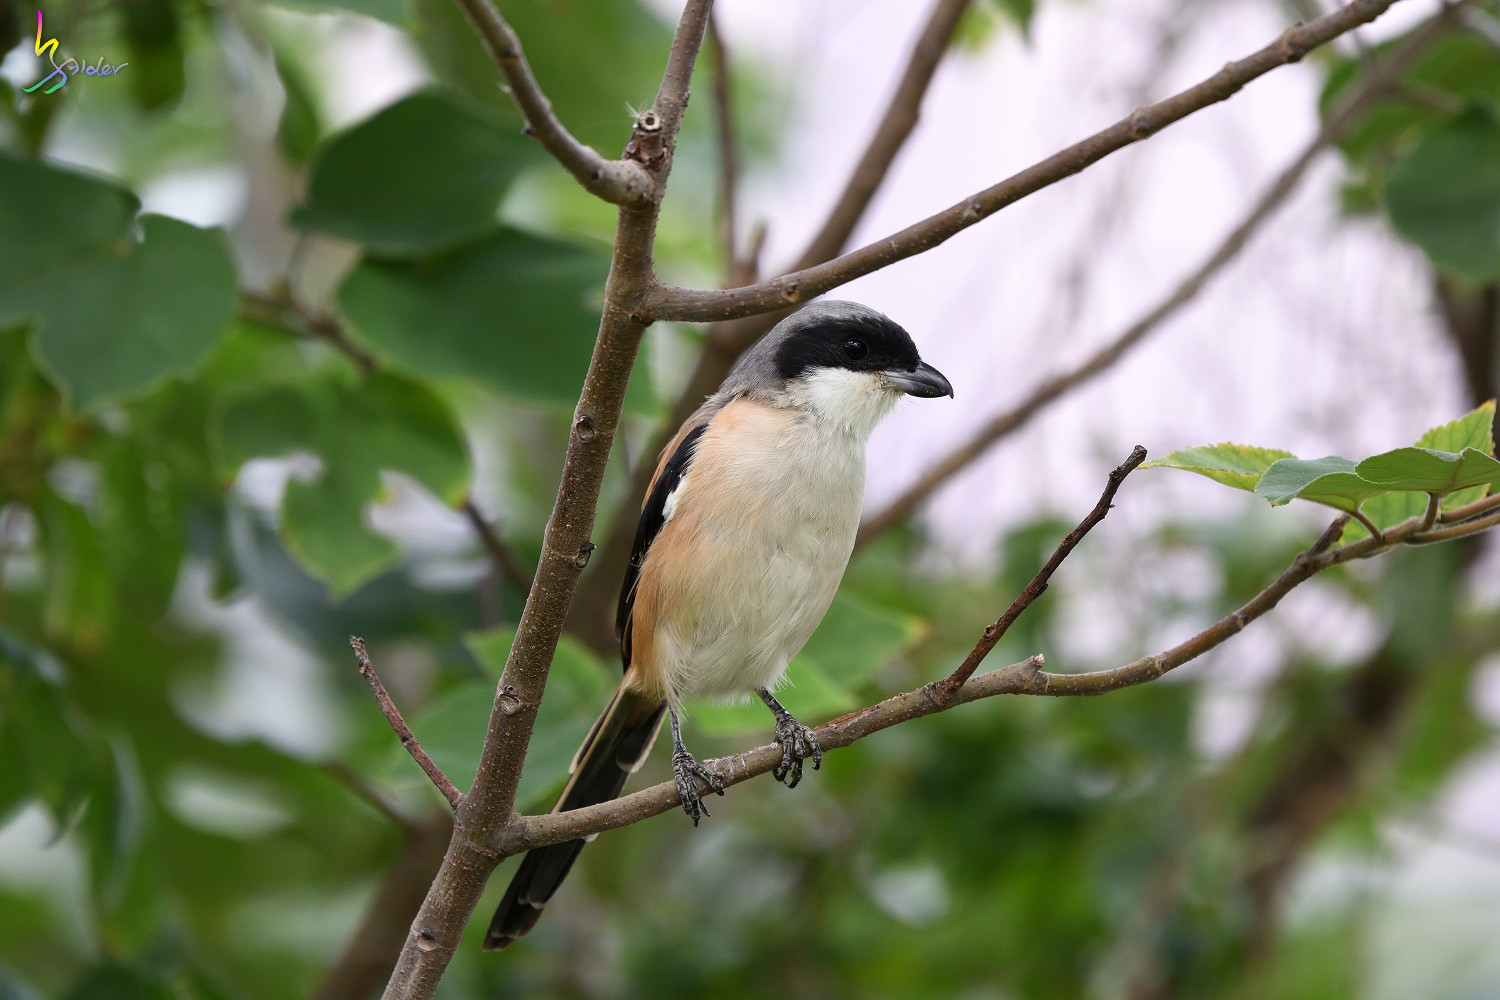 Long-tailed_Shrike_0876